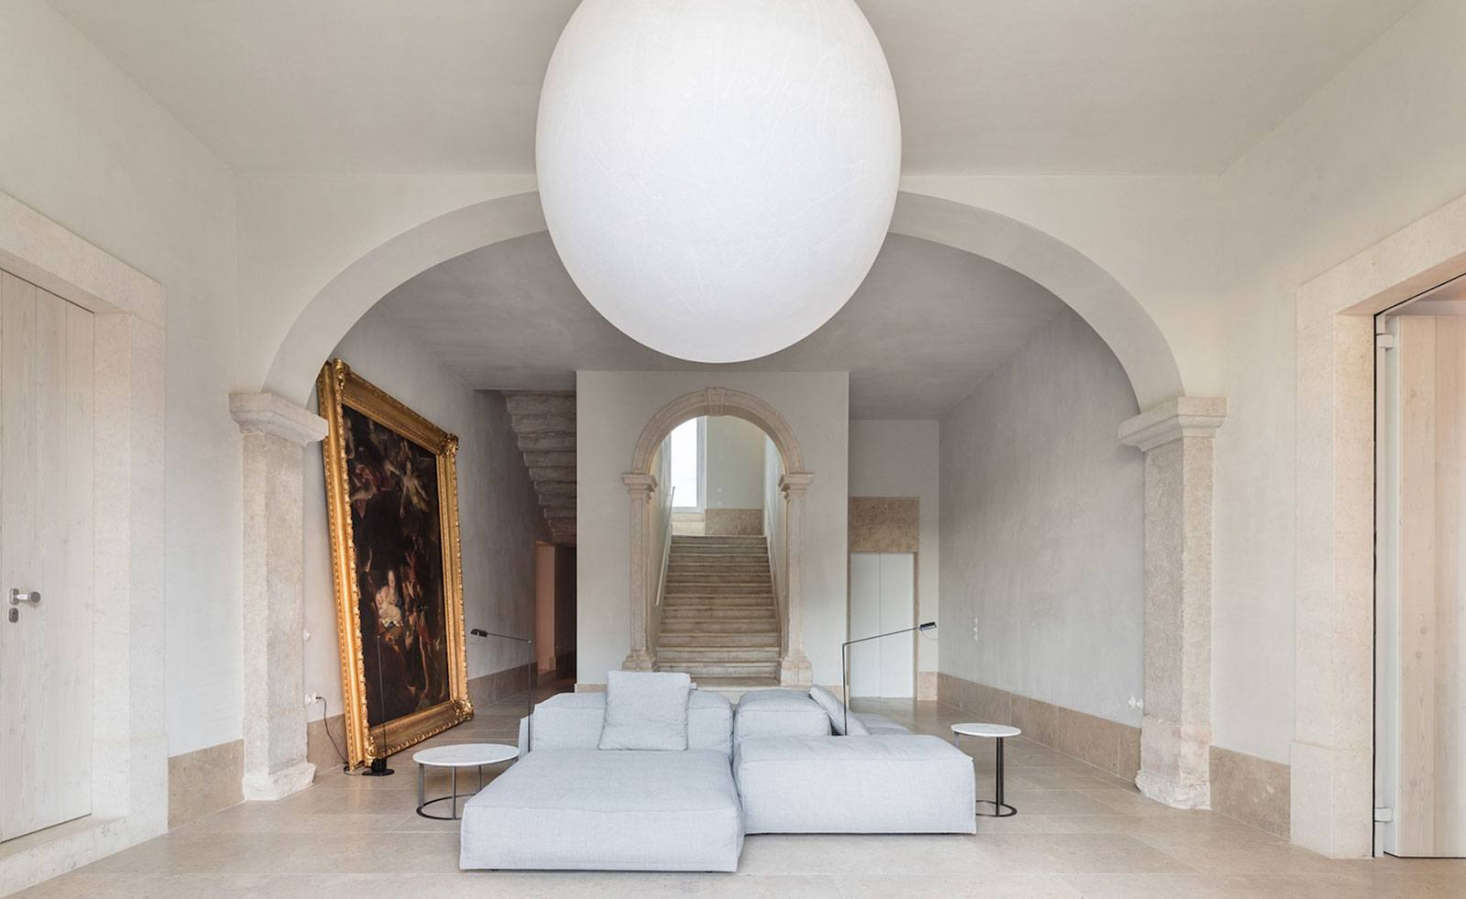 In the center of the marble-clad room is a modularExtrasoft sofa by Piero Lissoni from Living Divani.